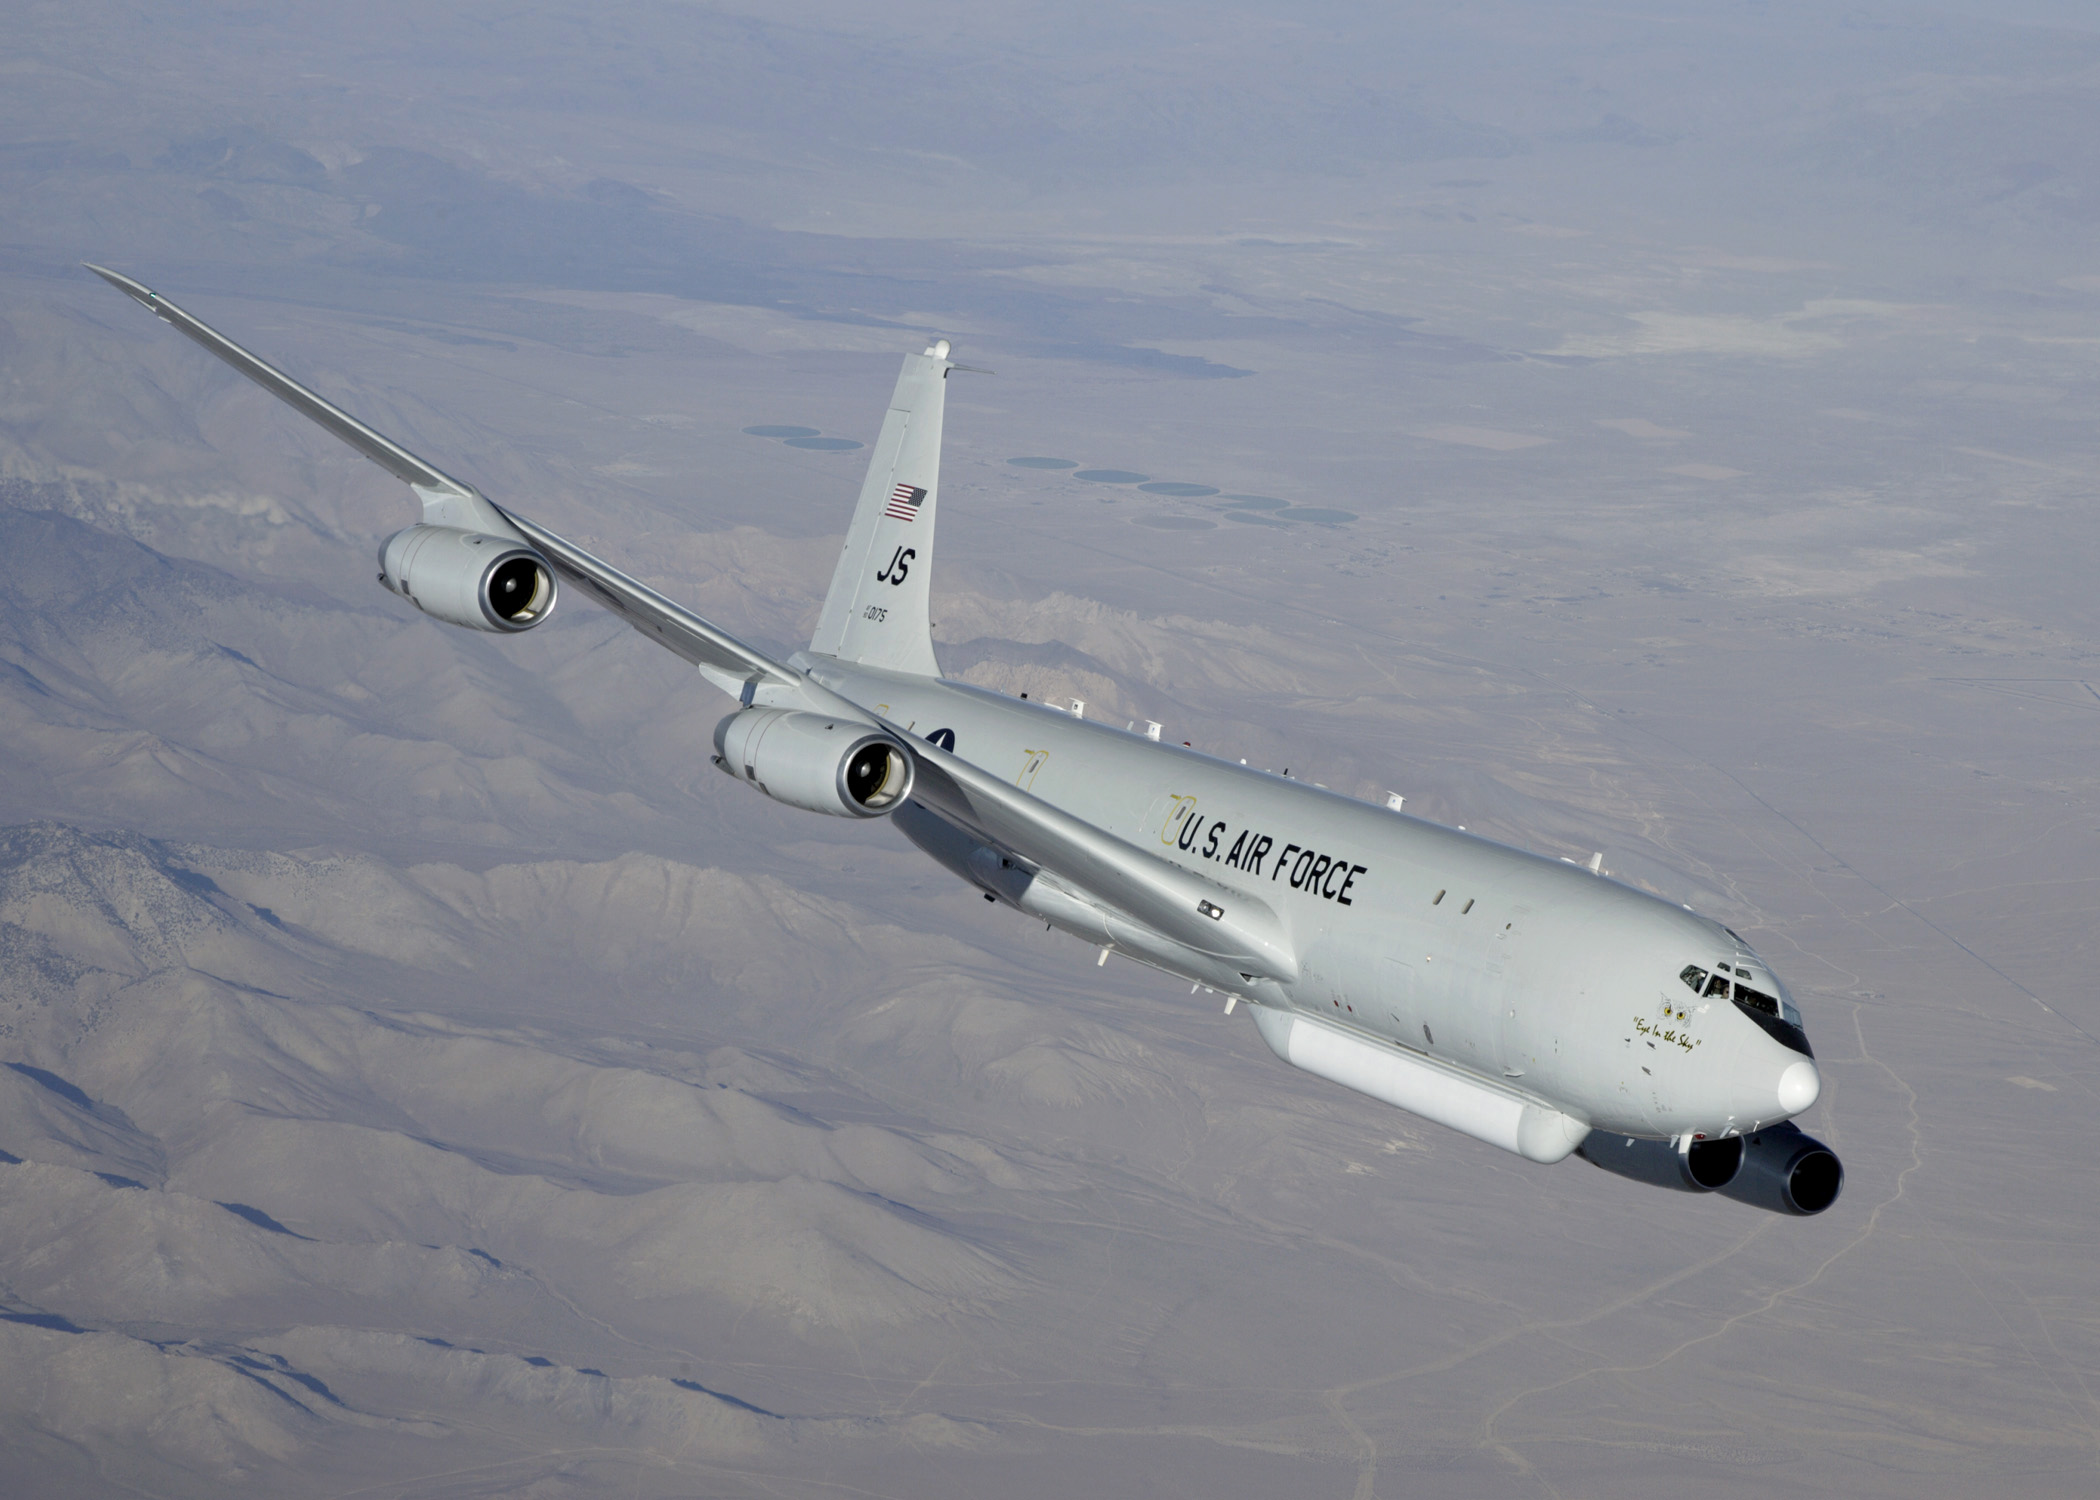 Northrop made JSTARS leadership changes after Air Force grounded planes last year